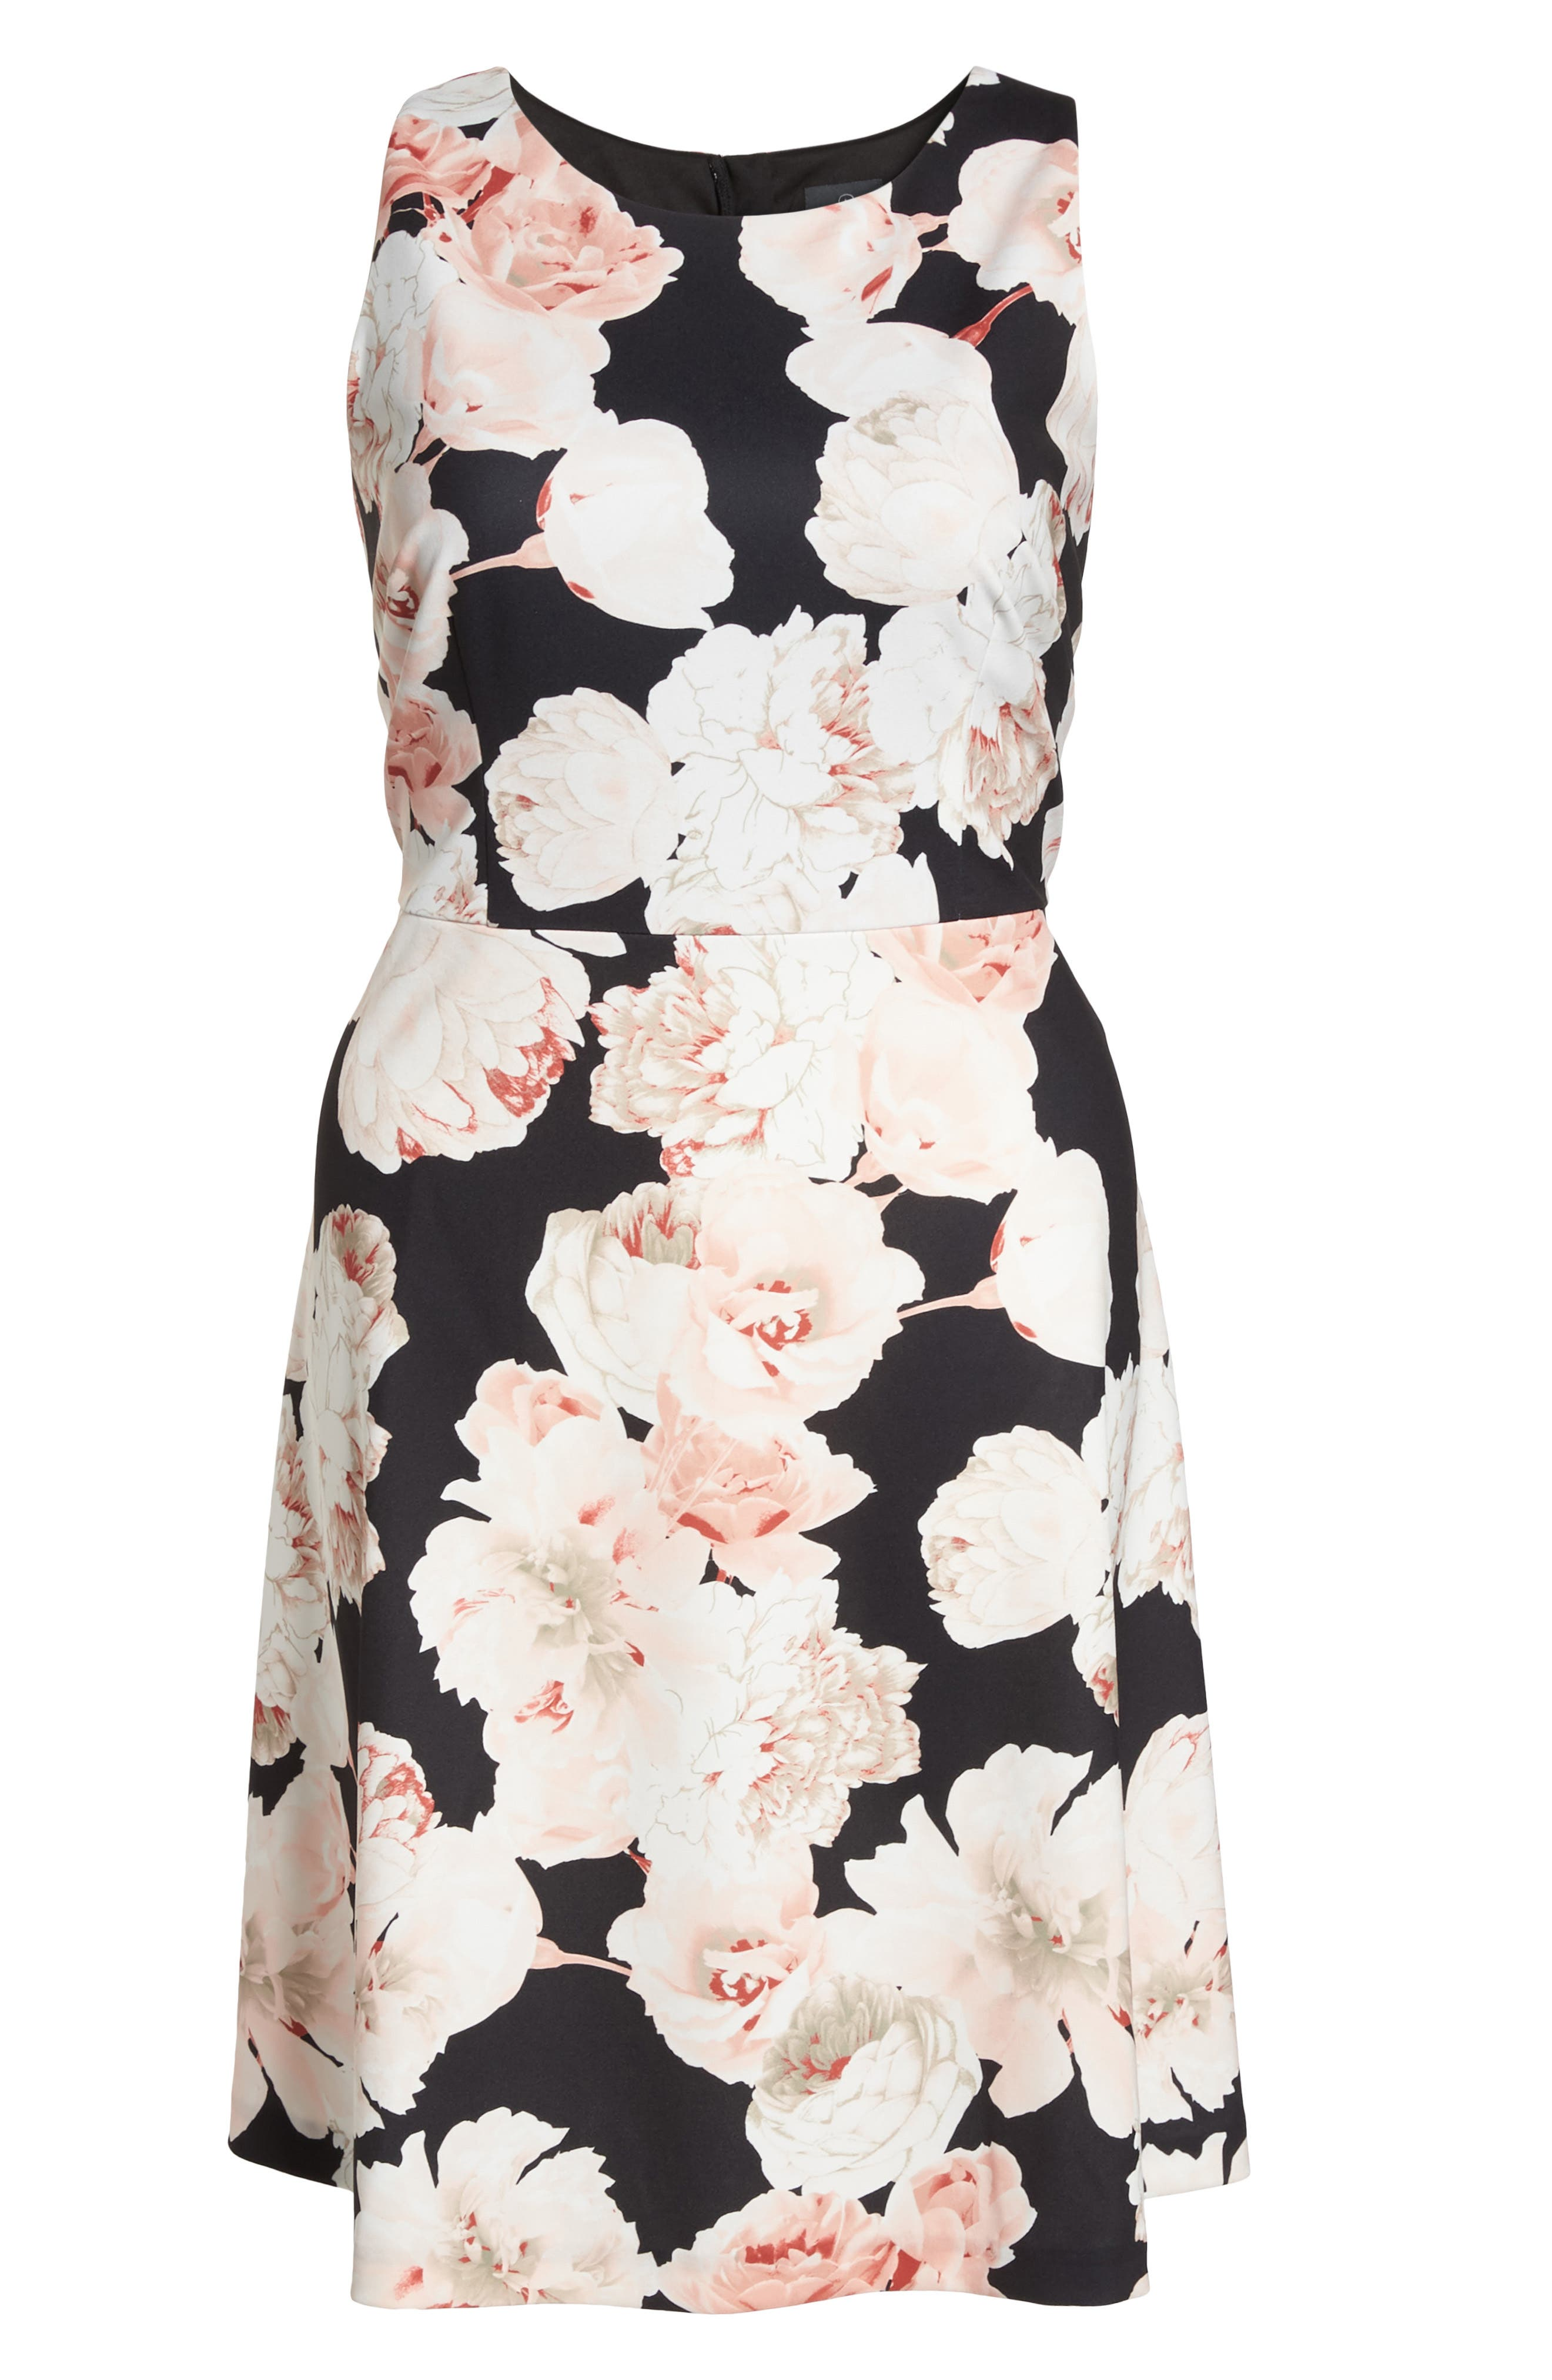 Floral A-Line Dress,                             Alternate thumbnail 6, color,                             002